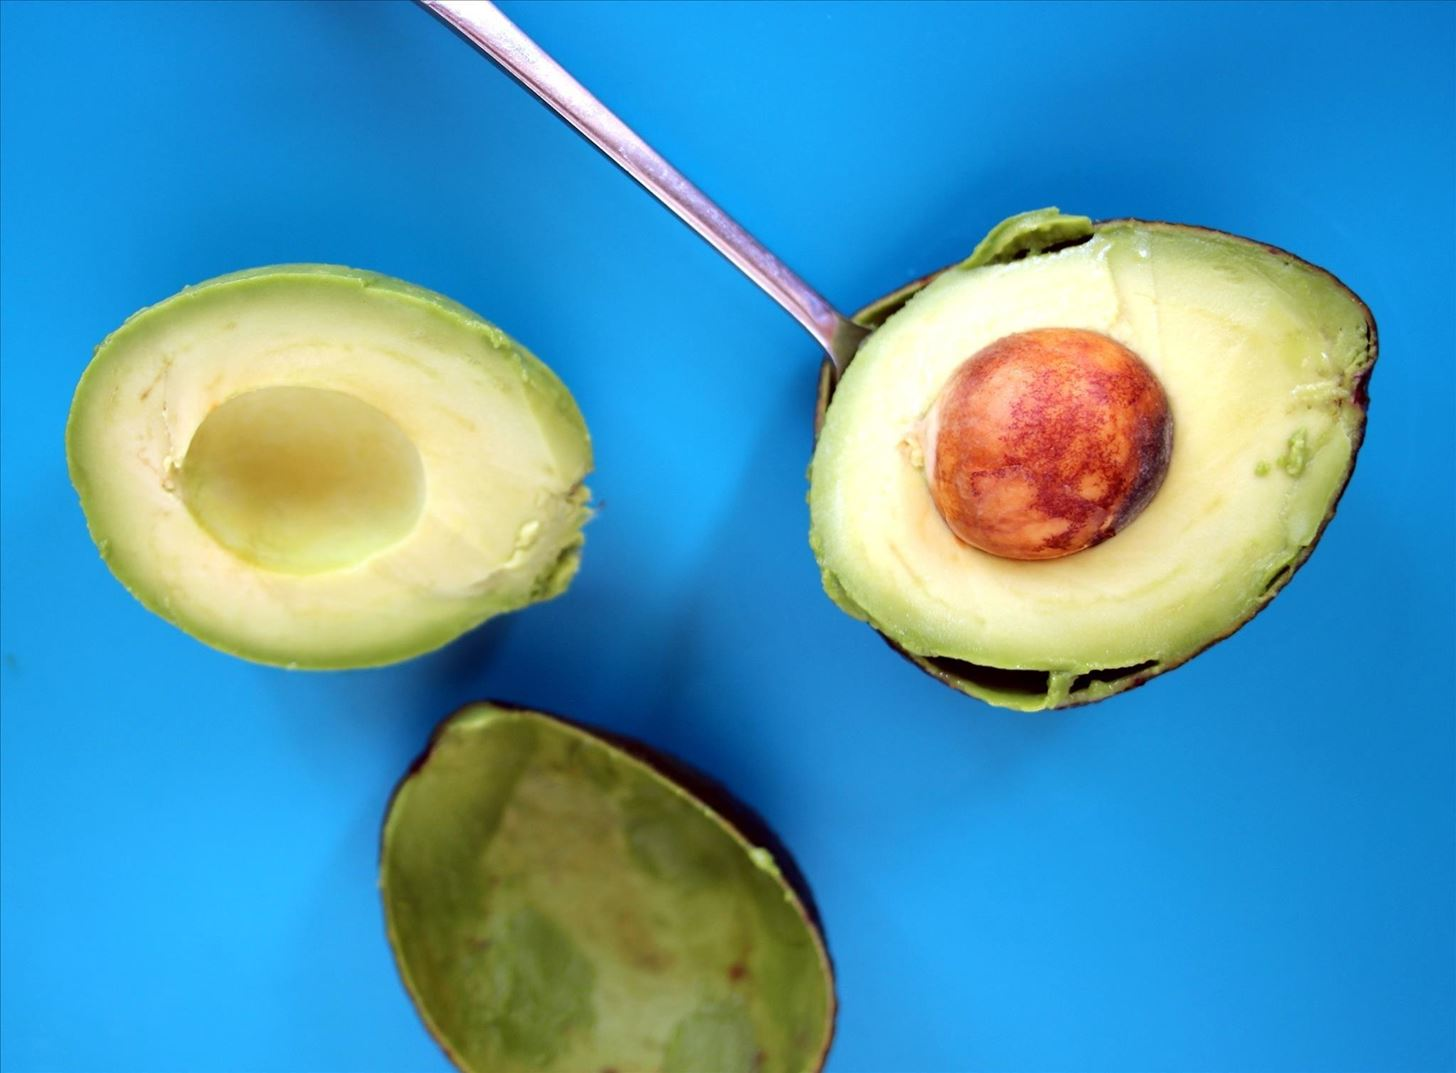 10 Stuffed Avocado Recipes to Die For